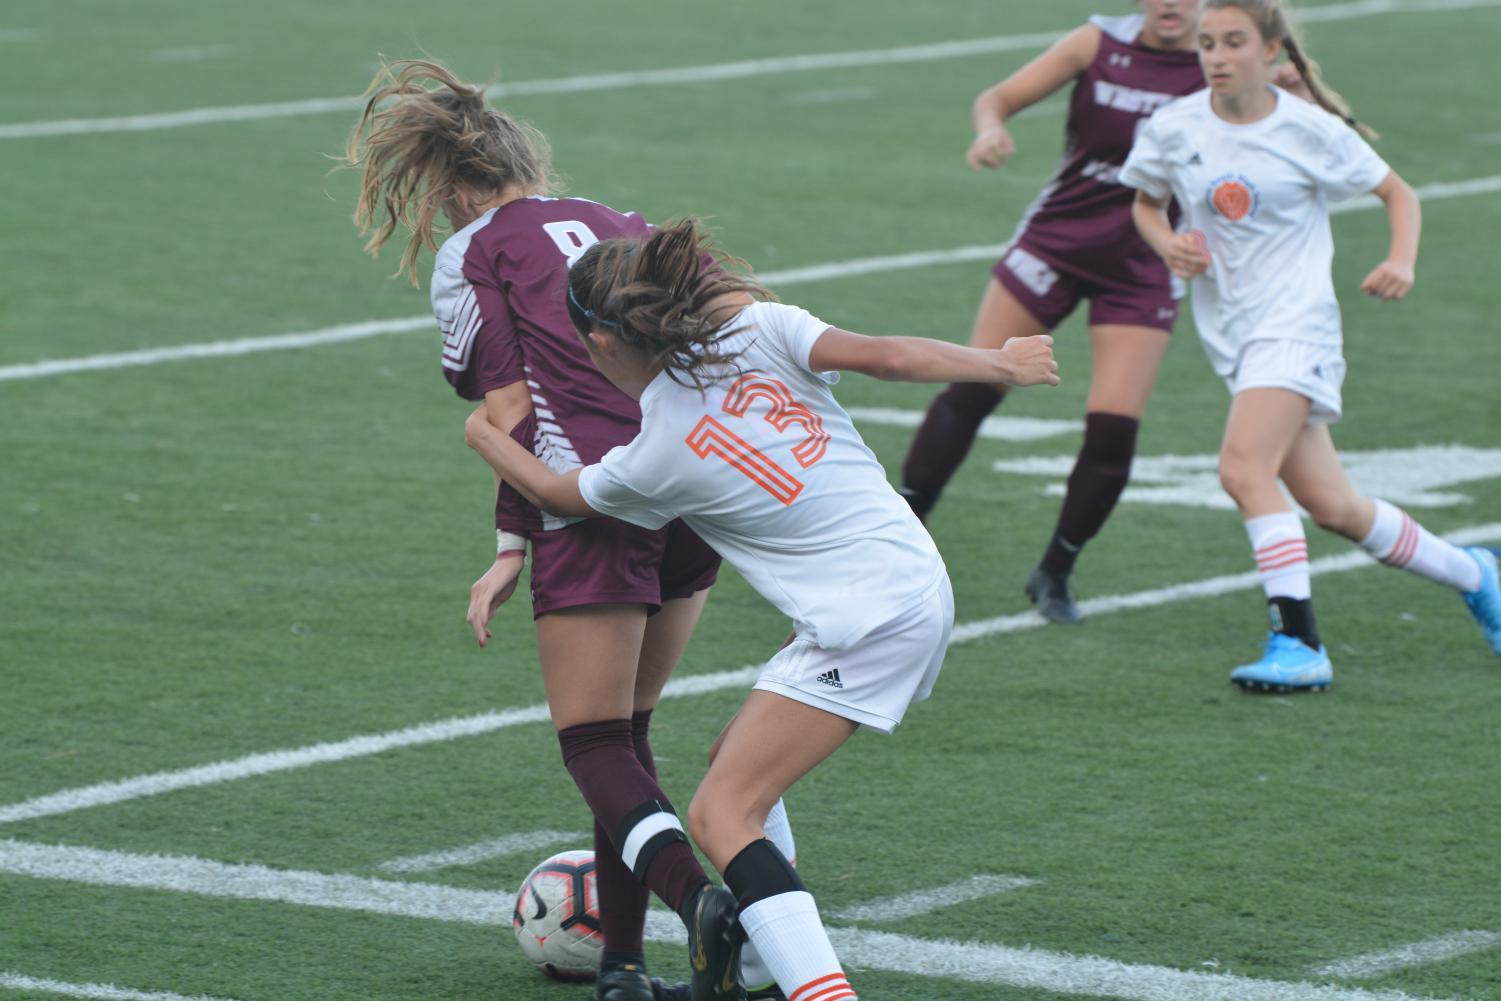 Girls' Varsity Soccer suffers loss at game dedicated to former coach Jeff Haight